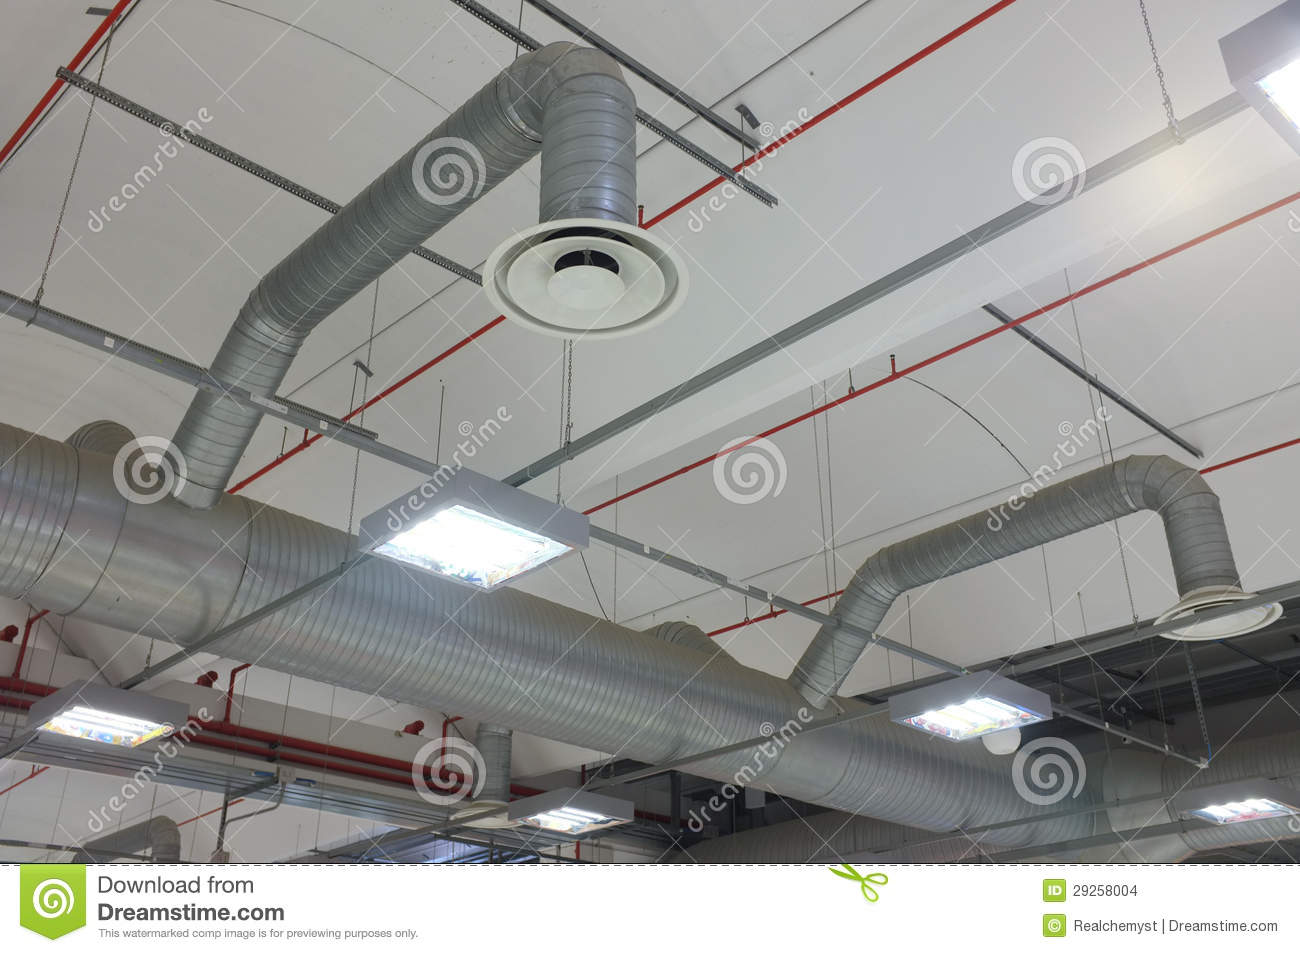 Industrial air conditioning system and air diffusers. #6F413C